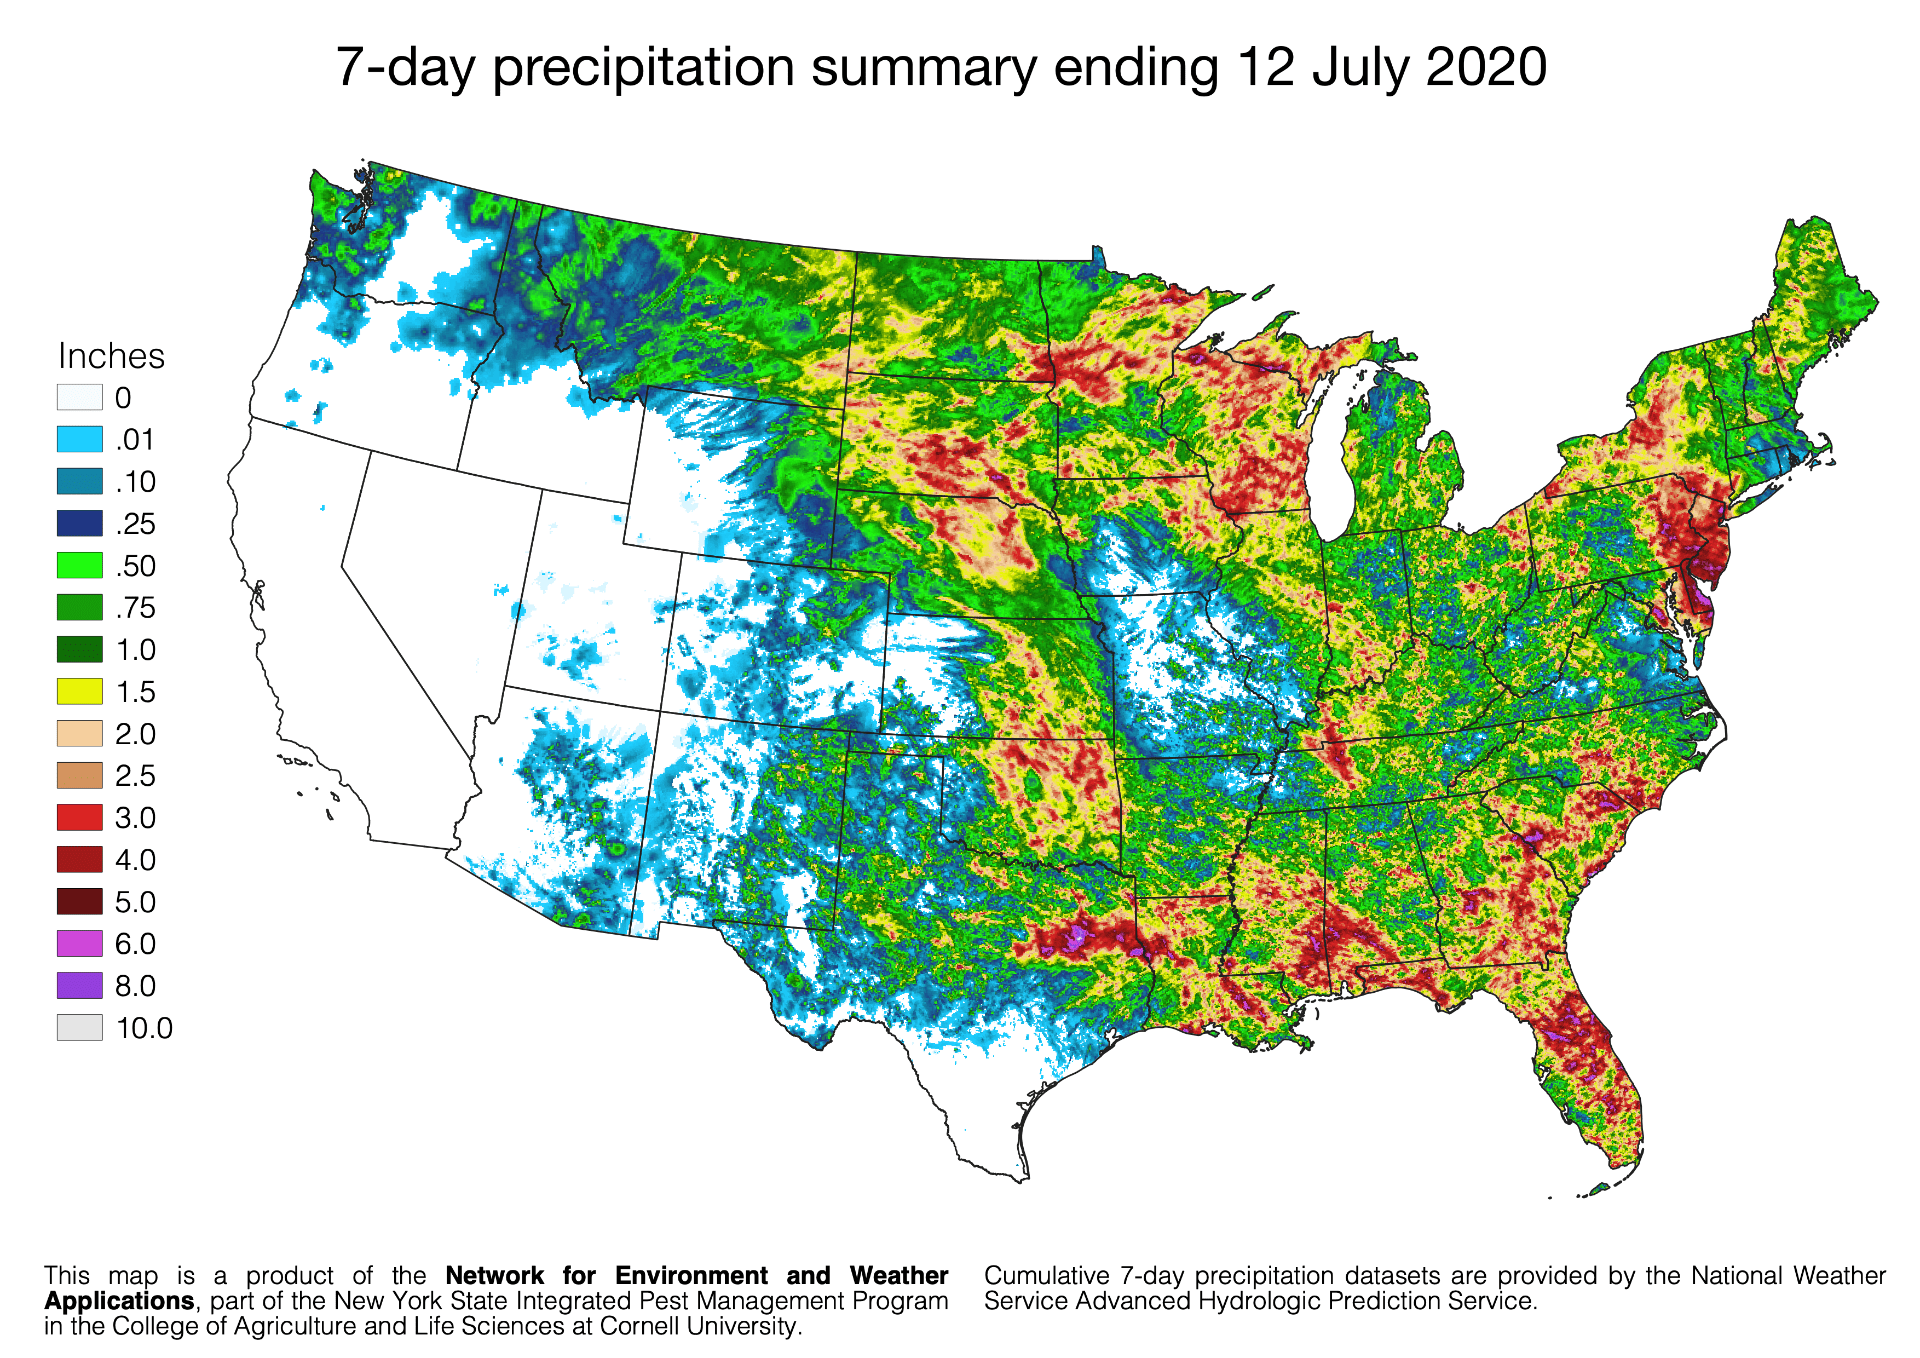 7-day rainfall totals ending 13 July 2020 for the continental United States.